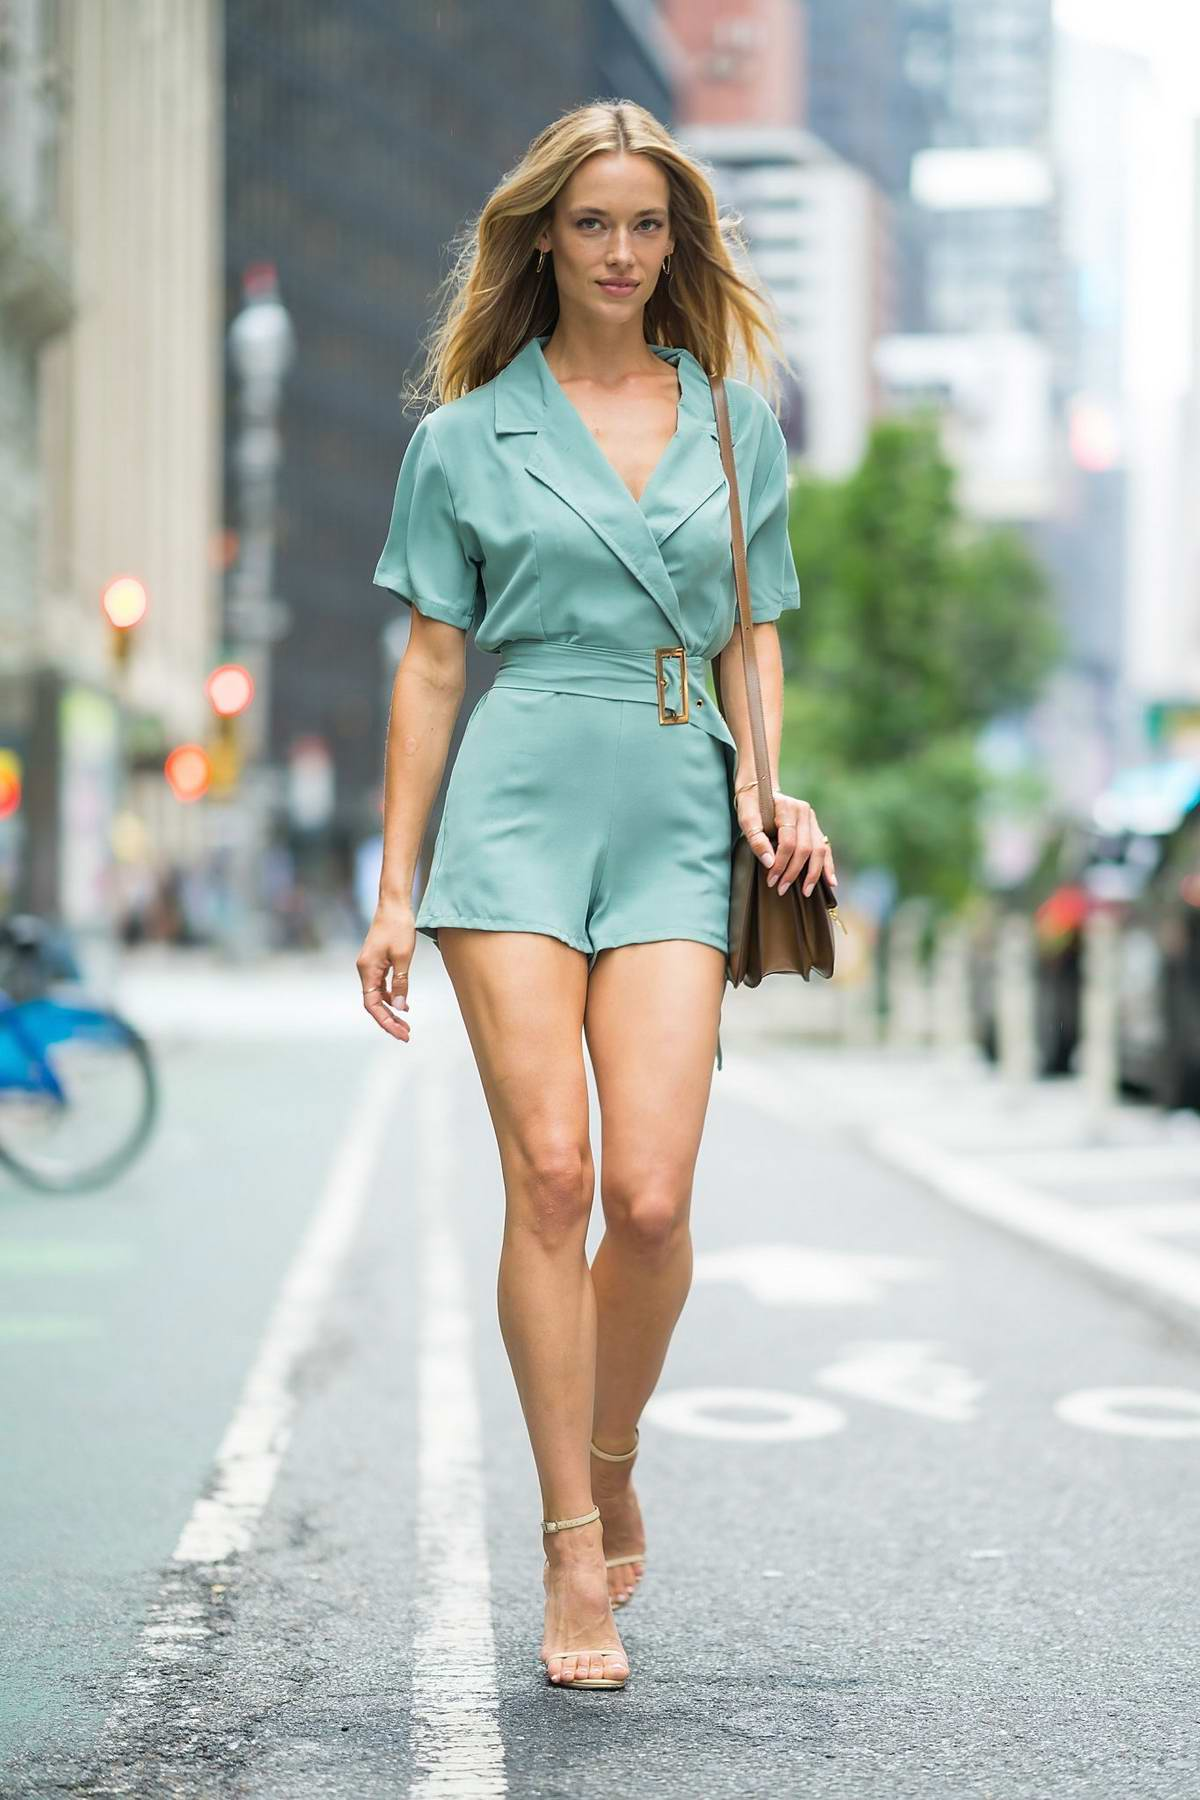 Hannah Ferguson attends casting call for the Victoria's Secret fashion show 2018 in Midtown in New York City